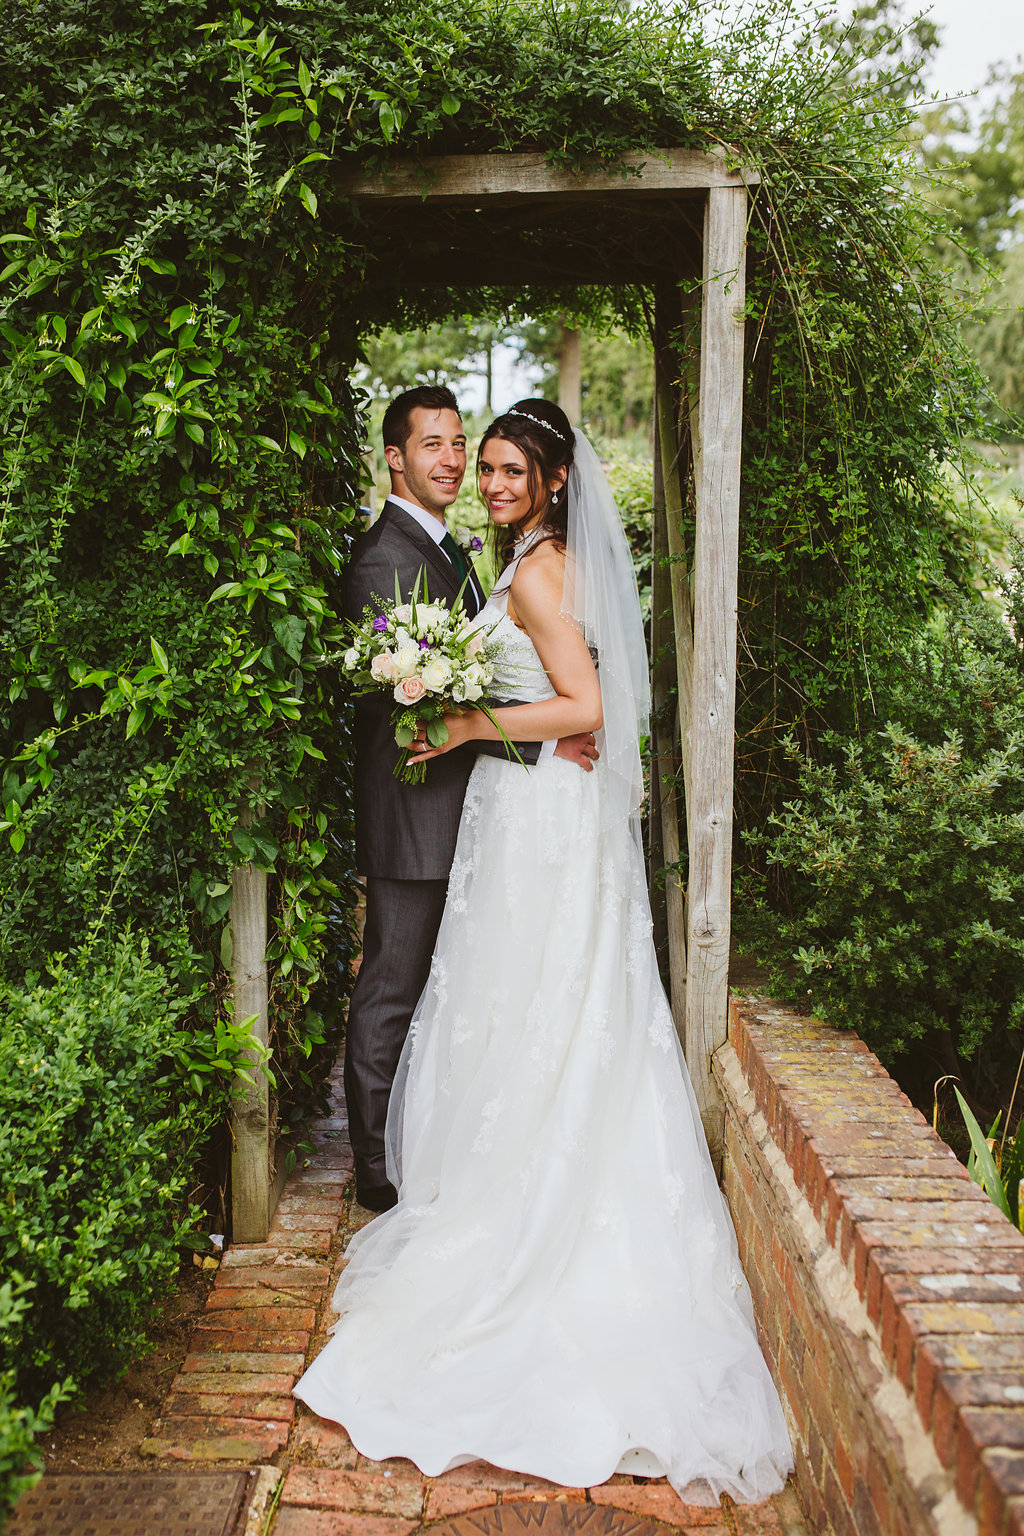 A Fantastical Lord Of The Rings Inspired Wedding At Tewin Bury Farm